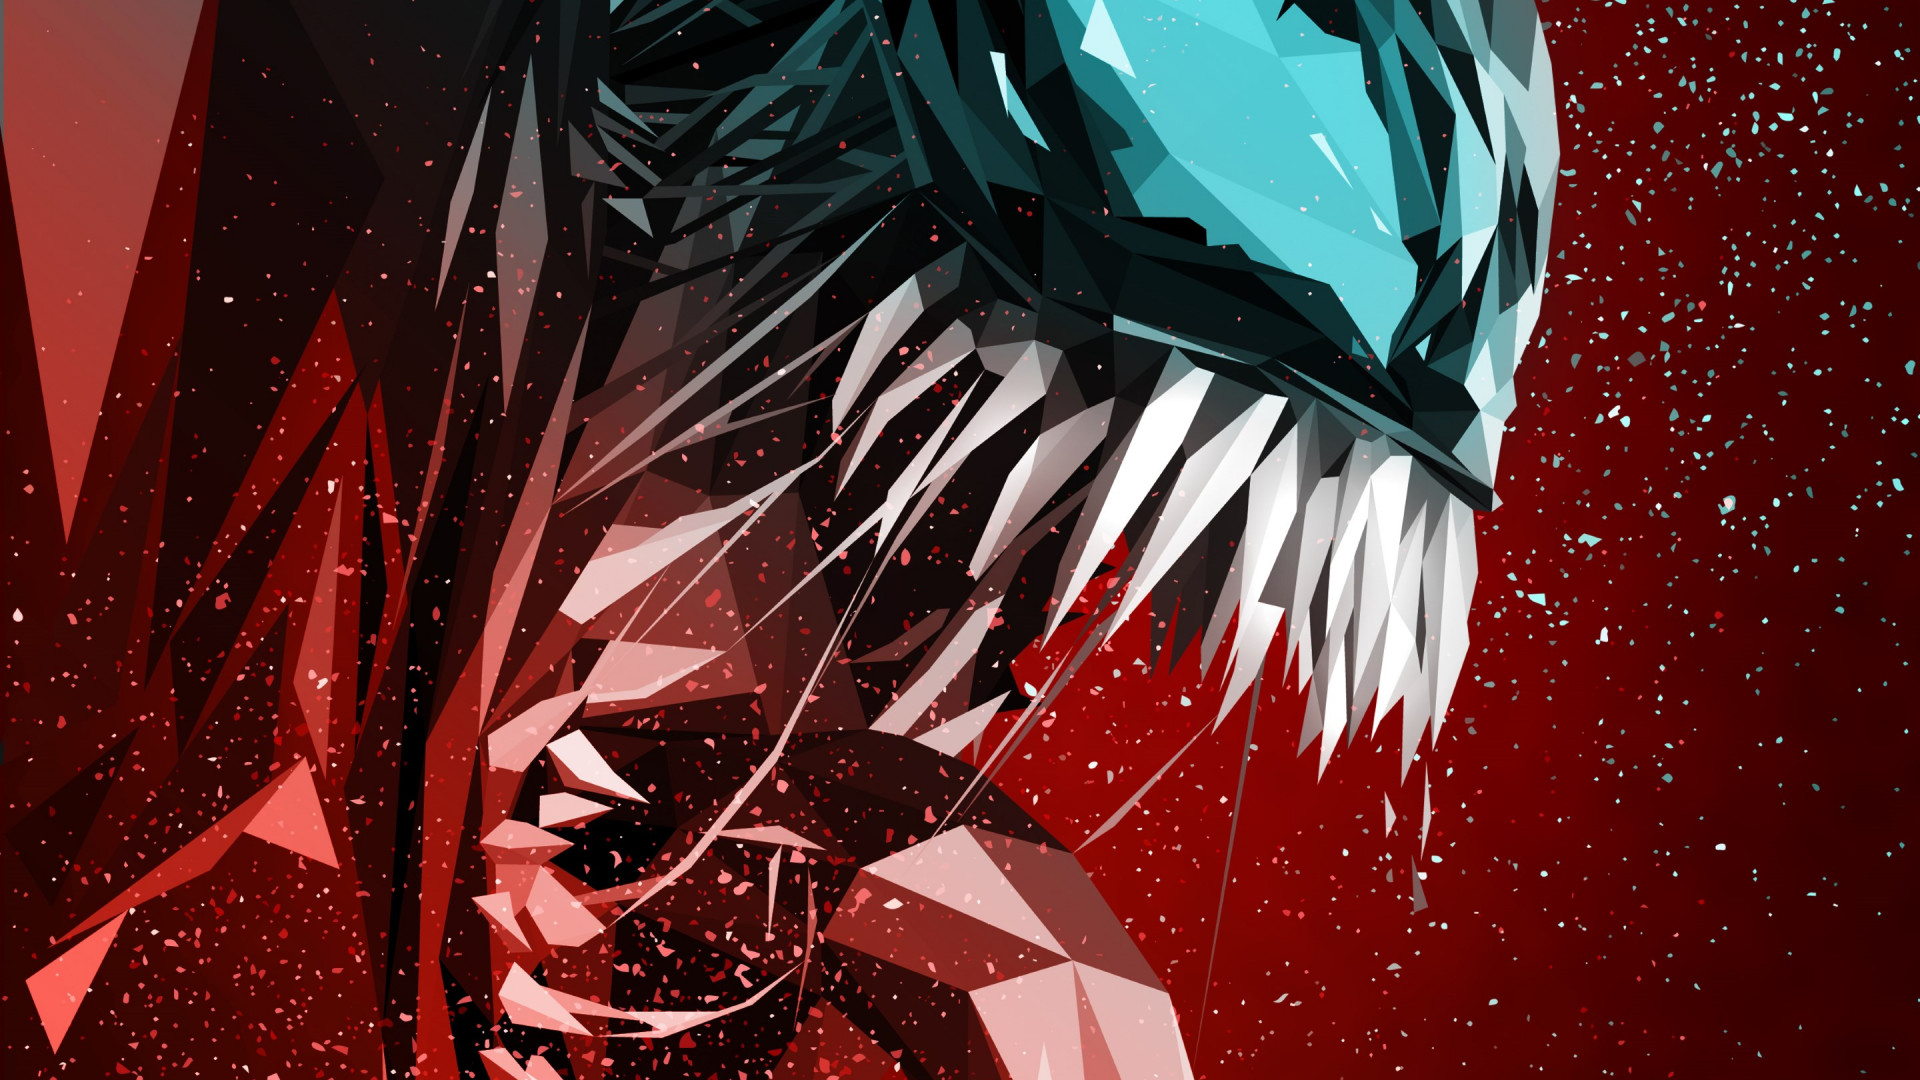 Download Wallpaper Venom Digital Art Poster 1920x1080